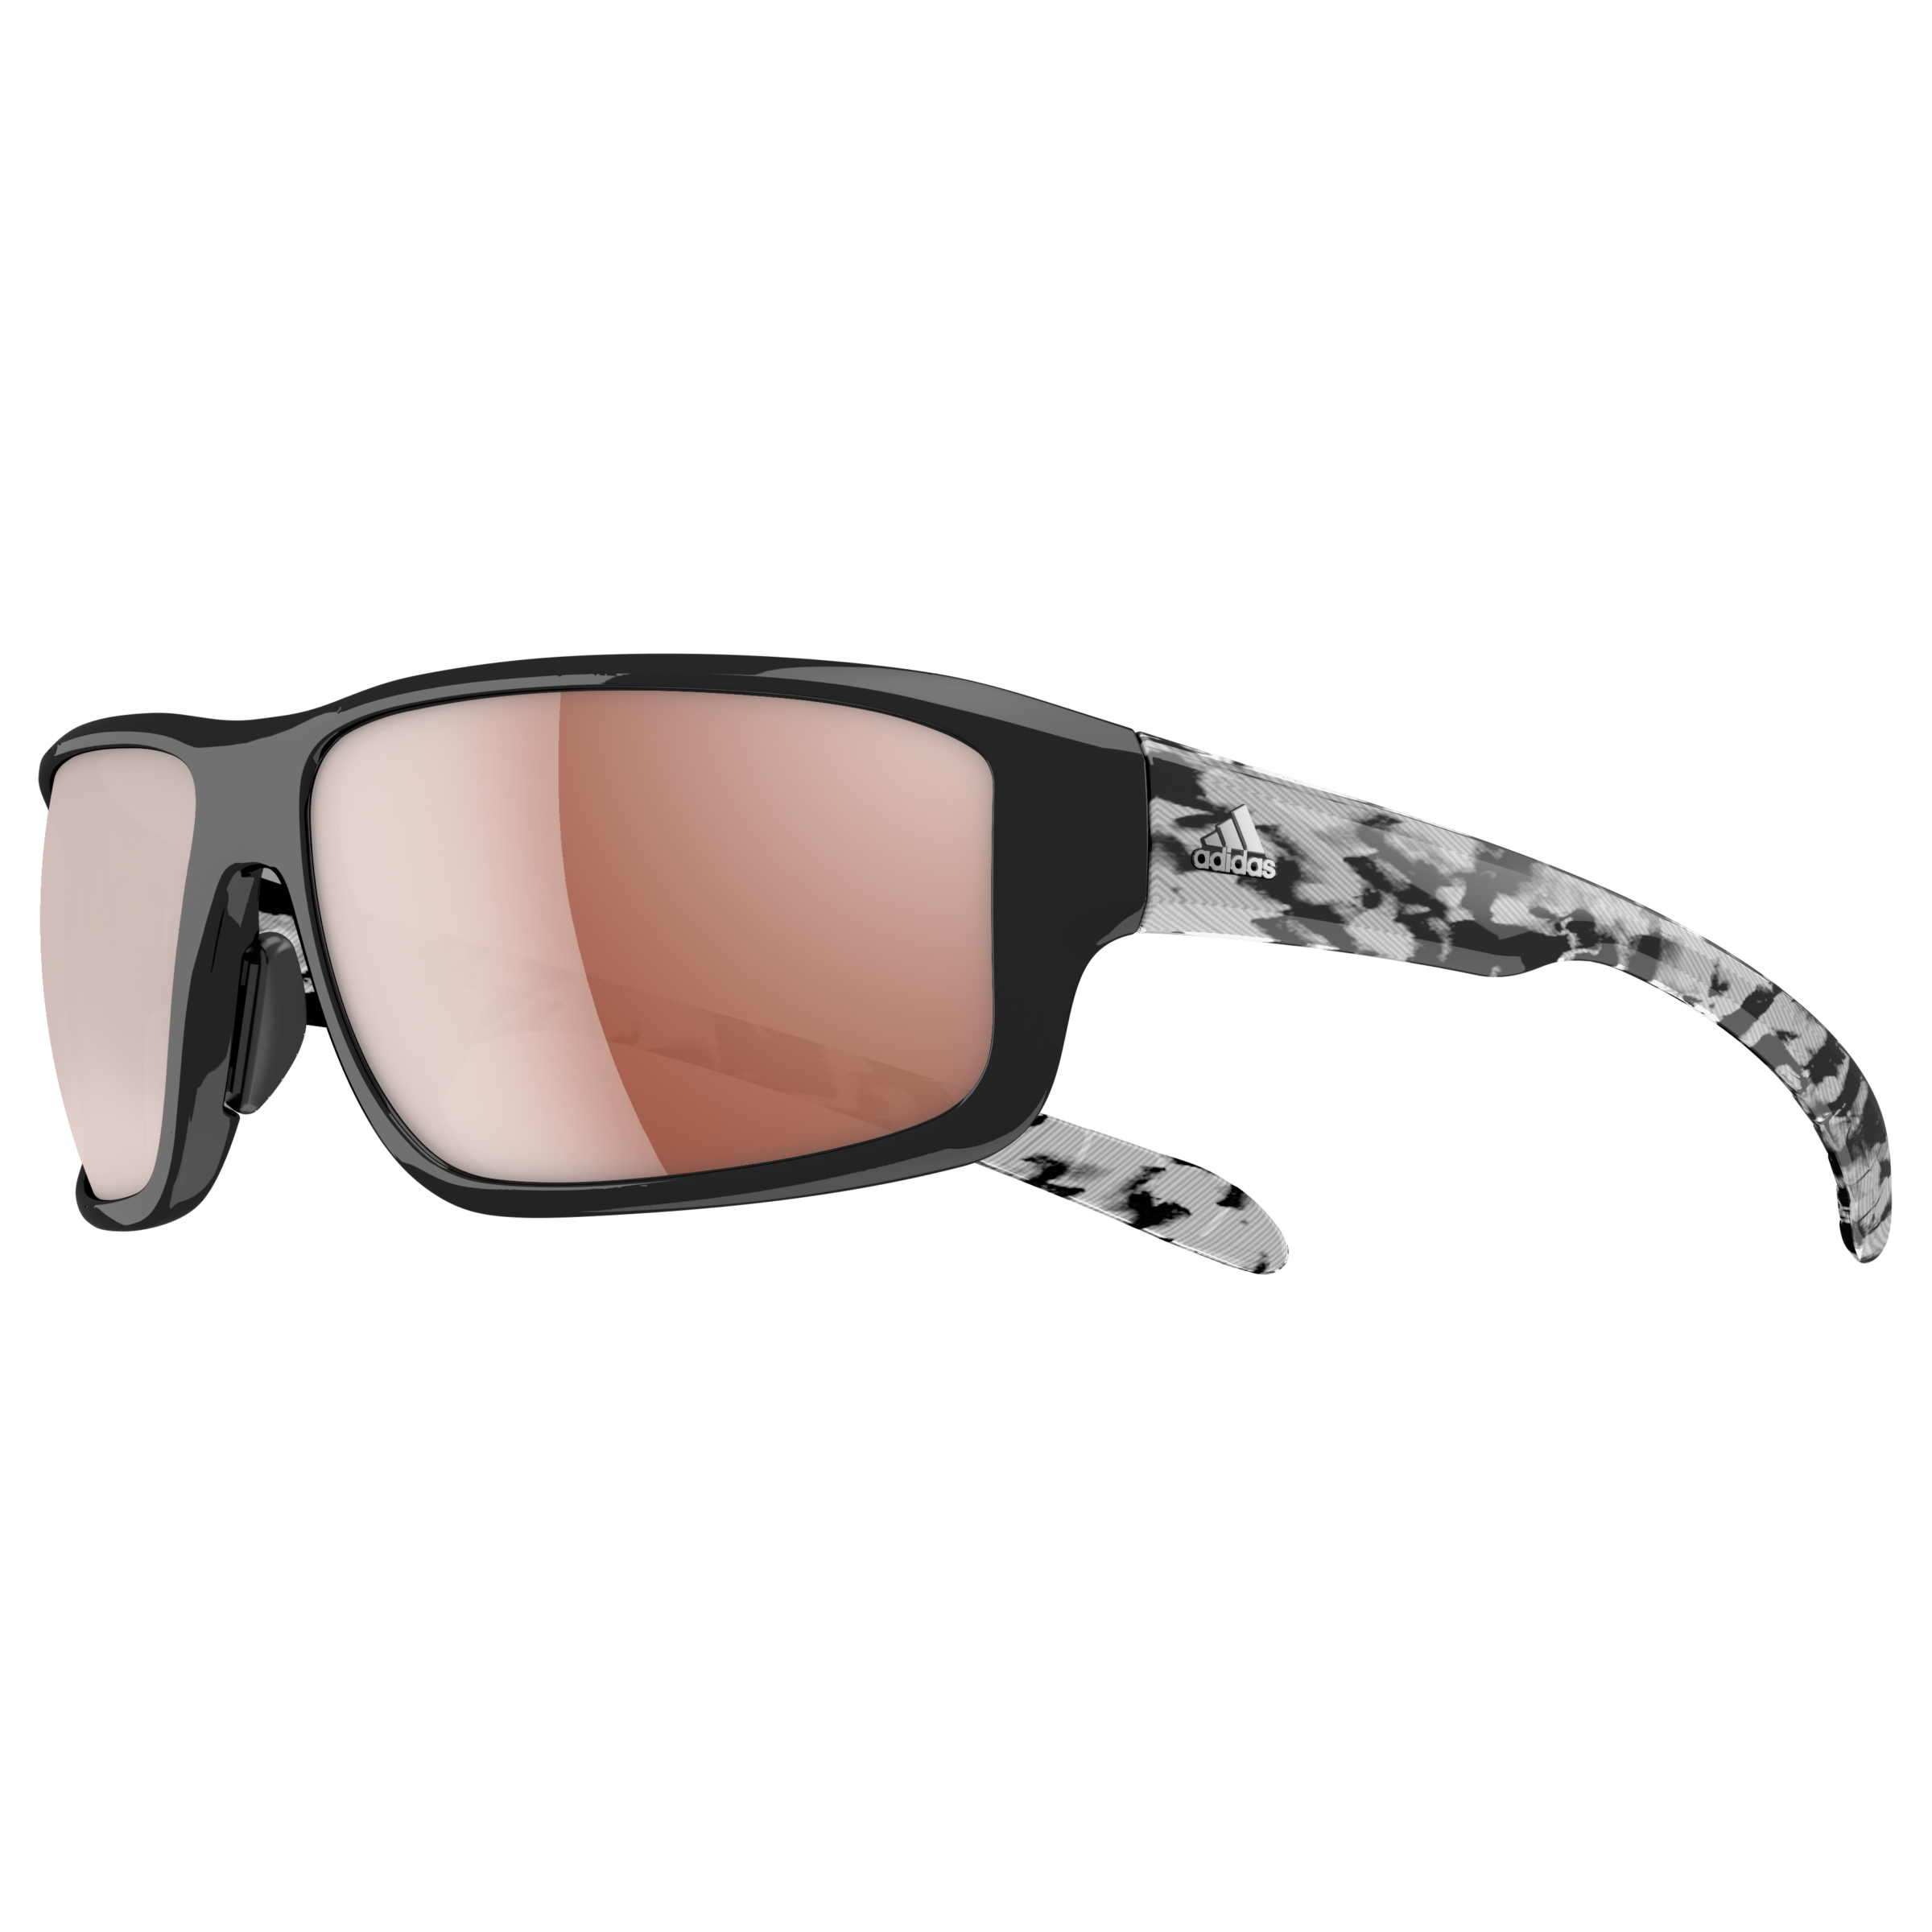 Col00 Major Adidas Psychological Cat 6061 Perspectives Kumacross 0 2 3 Lunettes eD2IW9HYE